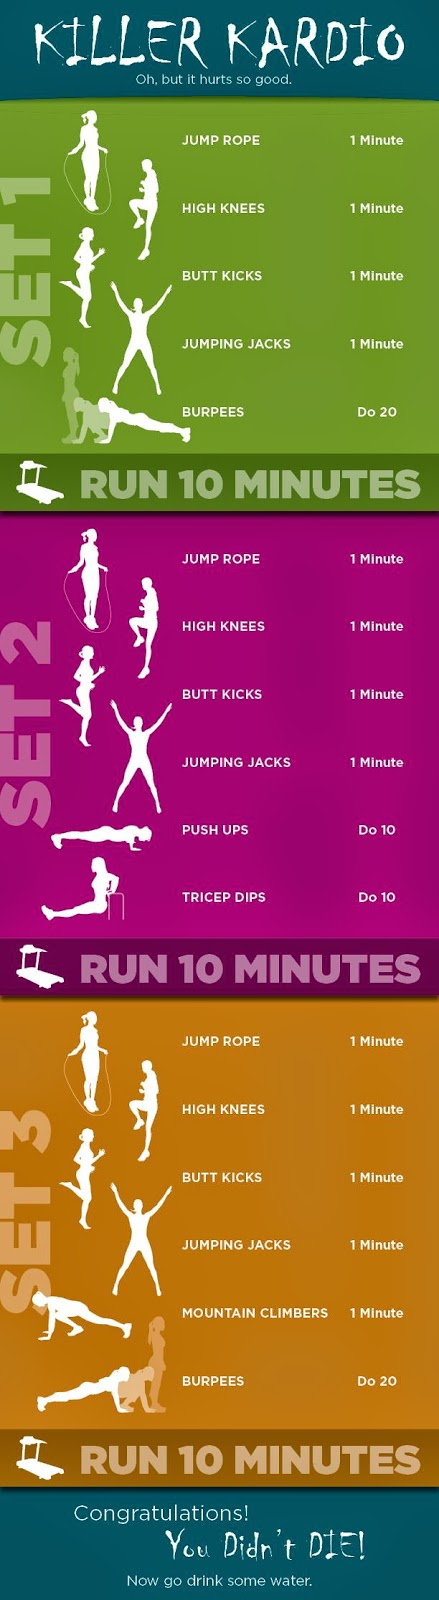 hover_share weight loss - cardio